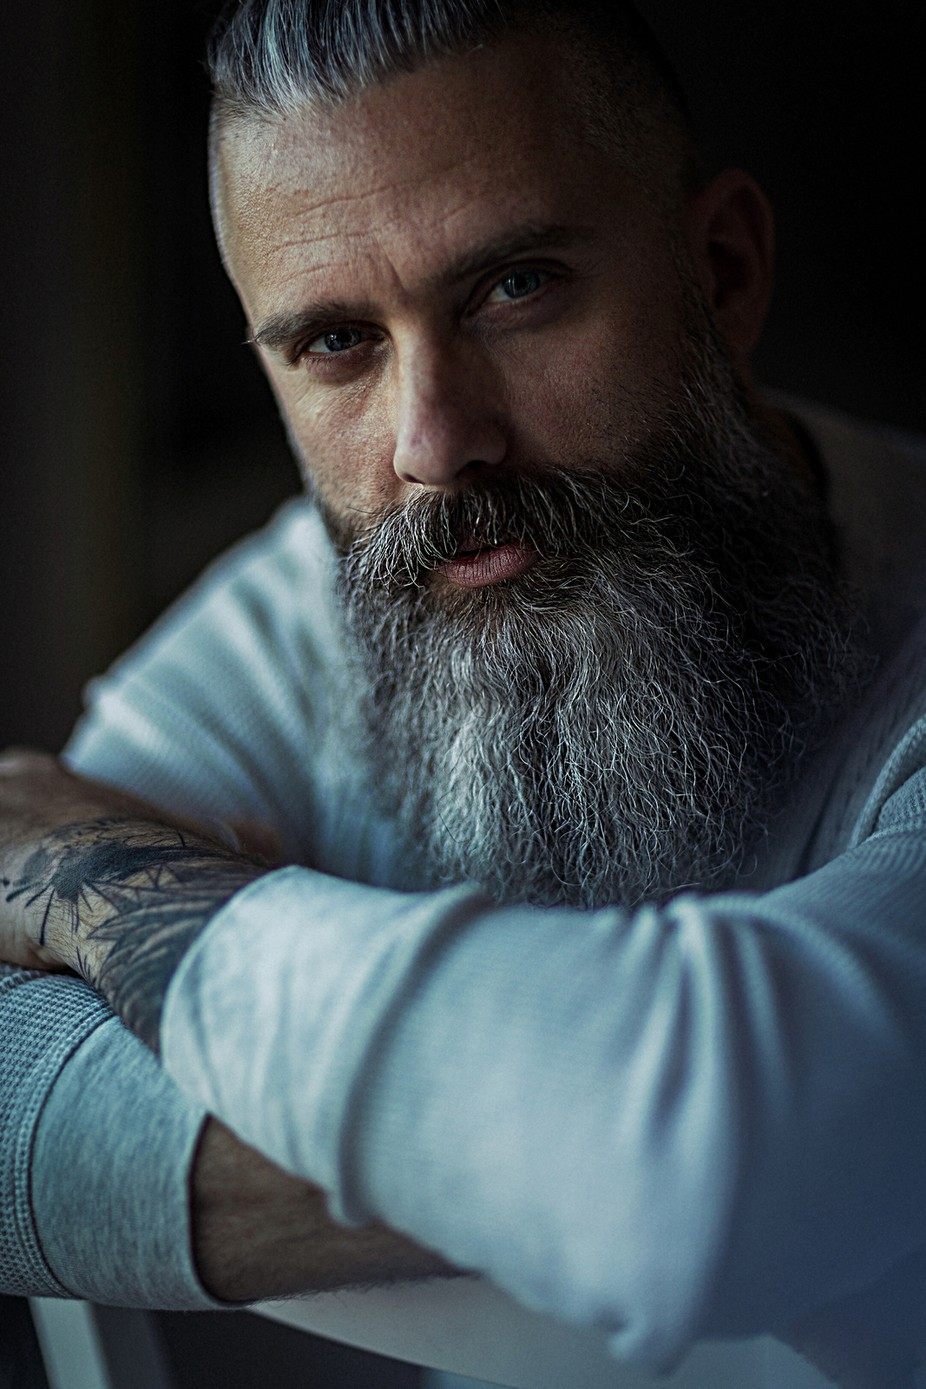 The soul of a man by panilsson - Beards and Mustaches Photo Contest